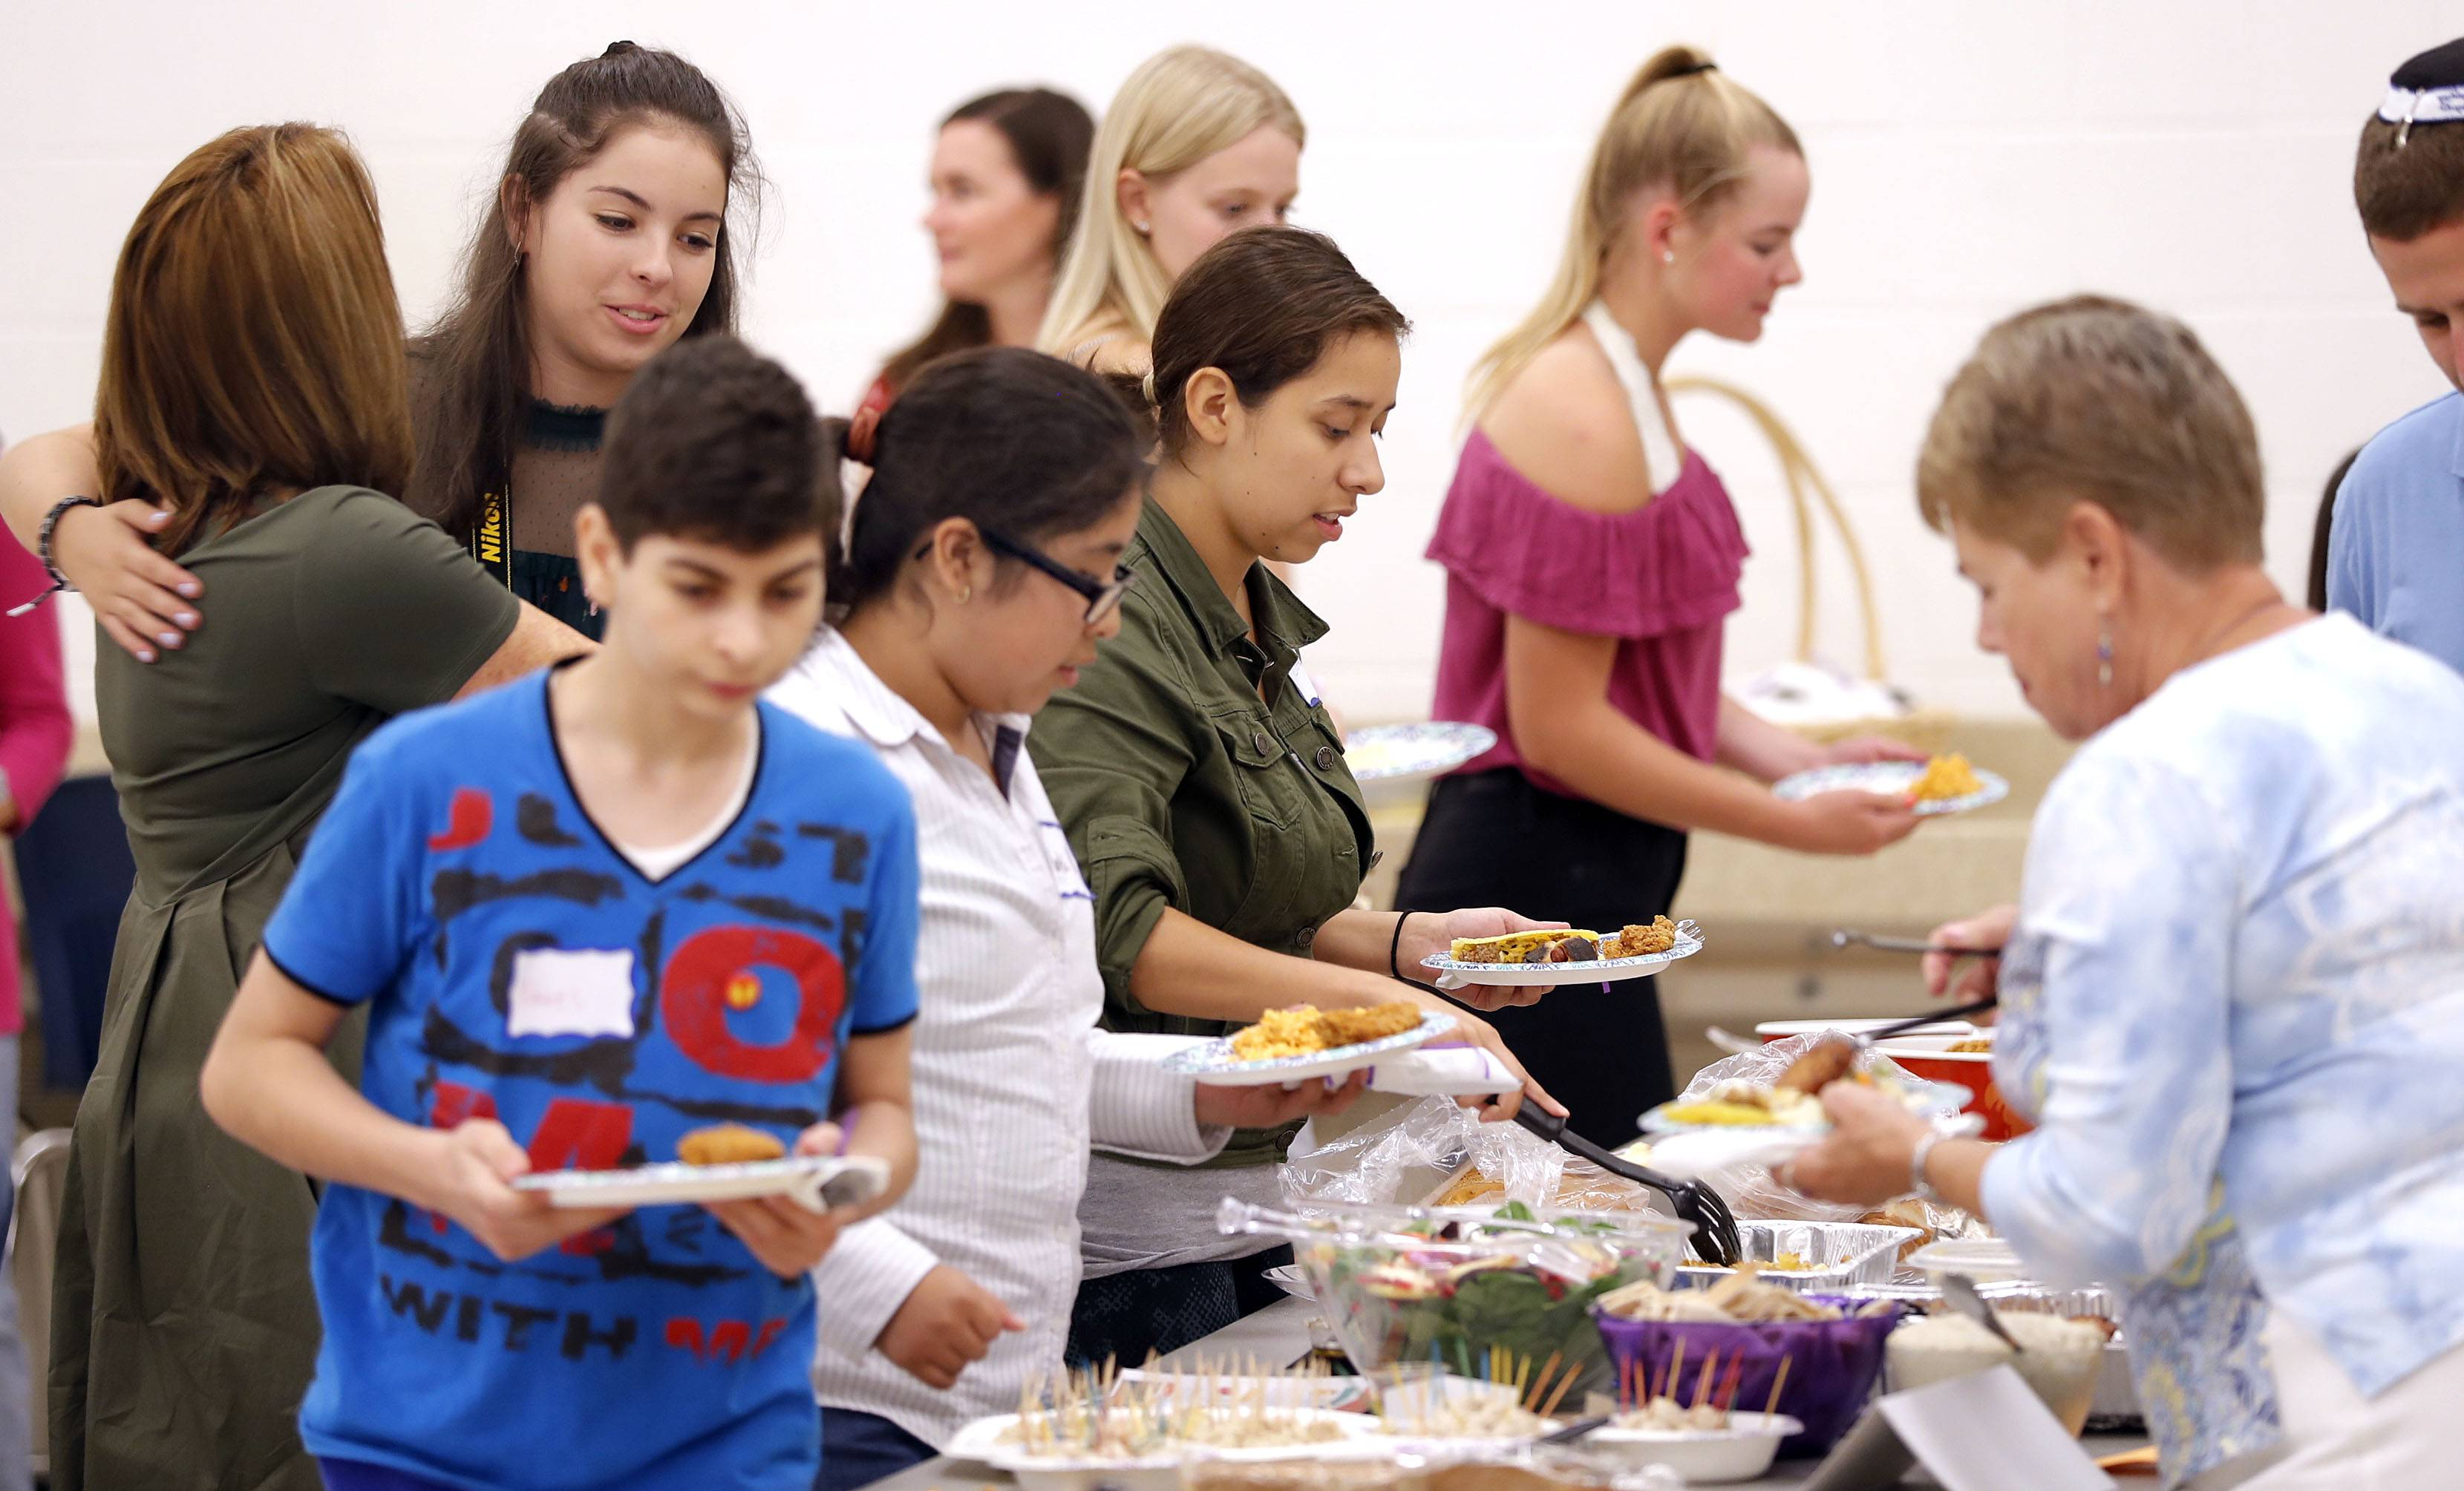 People enjoy a multicultural dinner during the Children of Abraham Coalition's seventh annual 9/11 interfaith Potluck For Peace Tuesday at St. Viator High School in Arlington Heights.